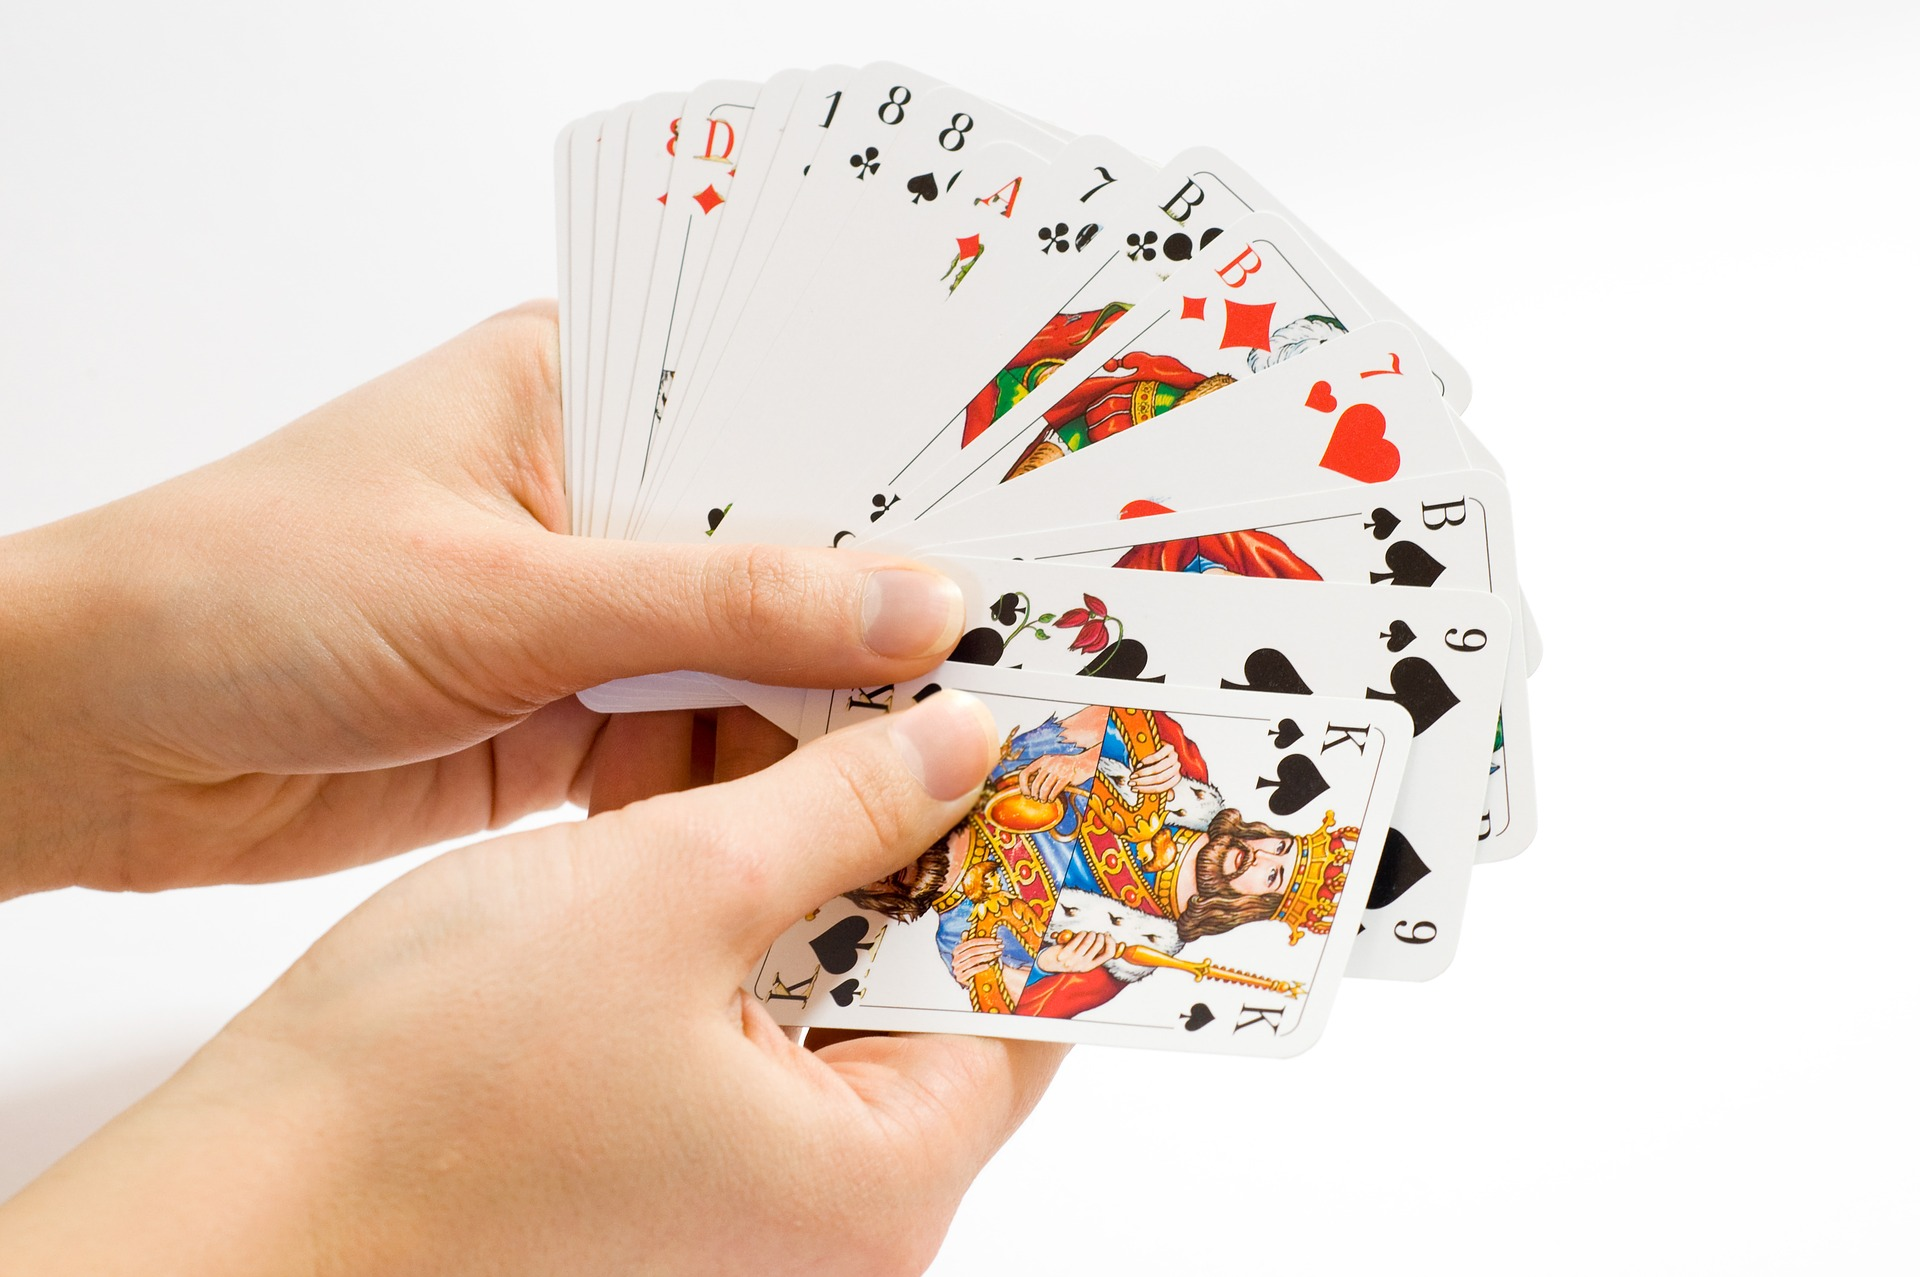 Enjoy Some Of The Best Card Games For Two People